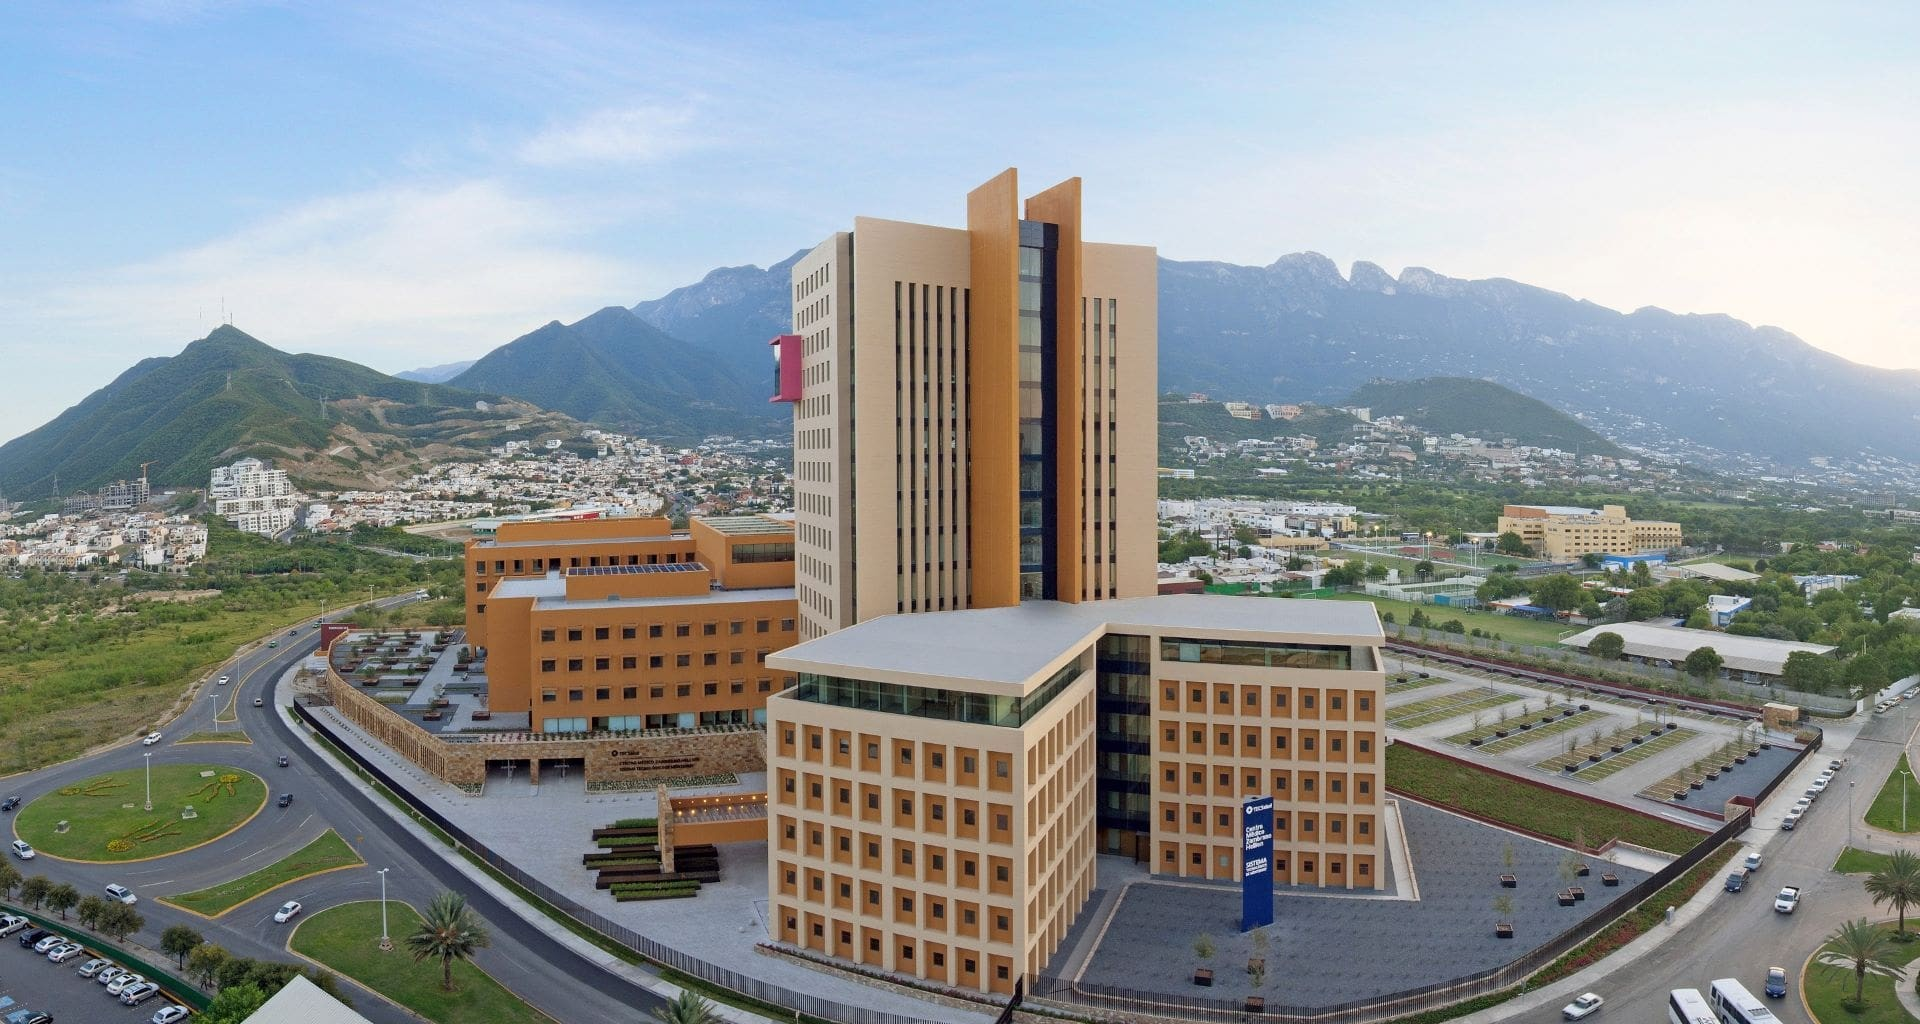 TecSalud hospitals among the top four in Mexico